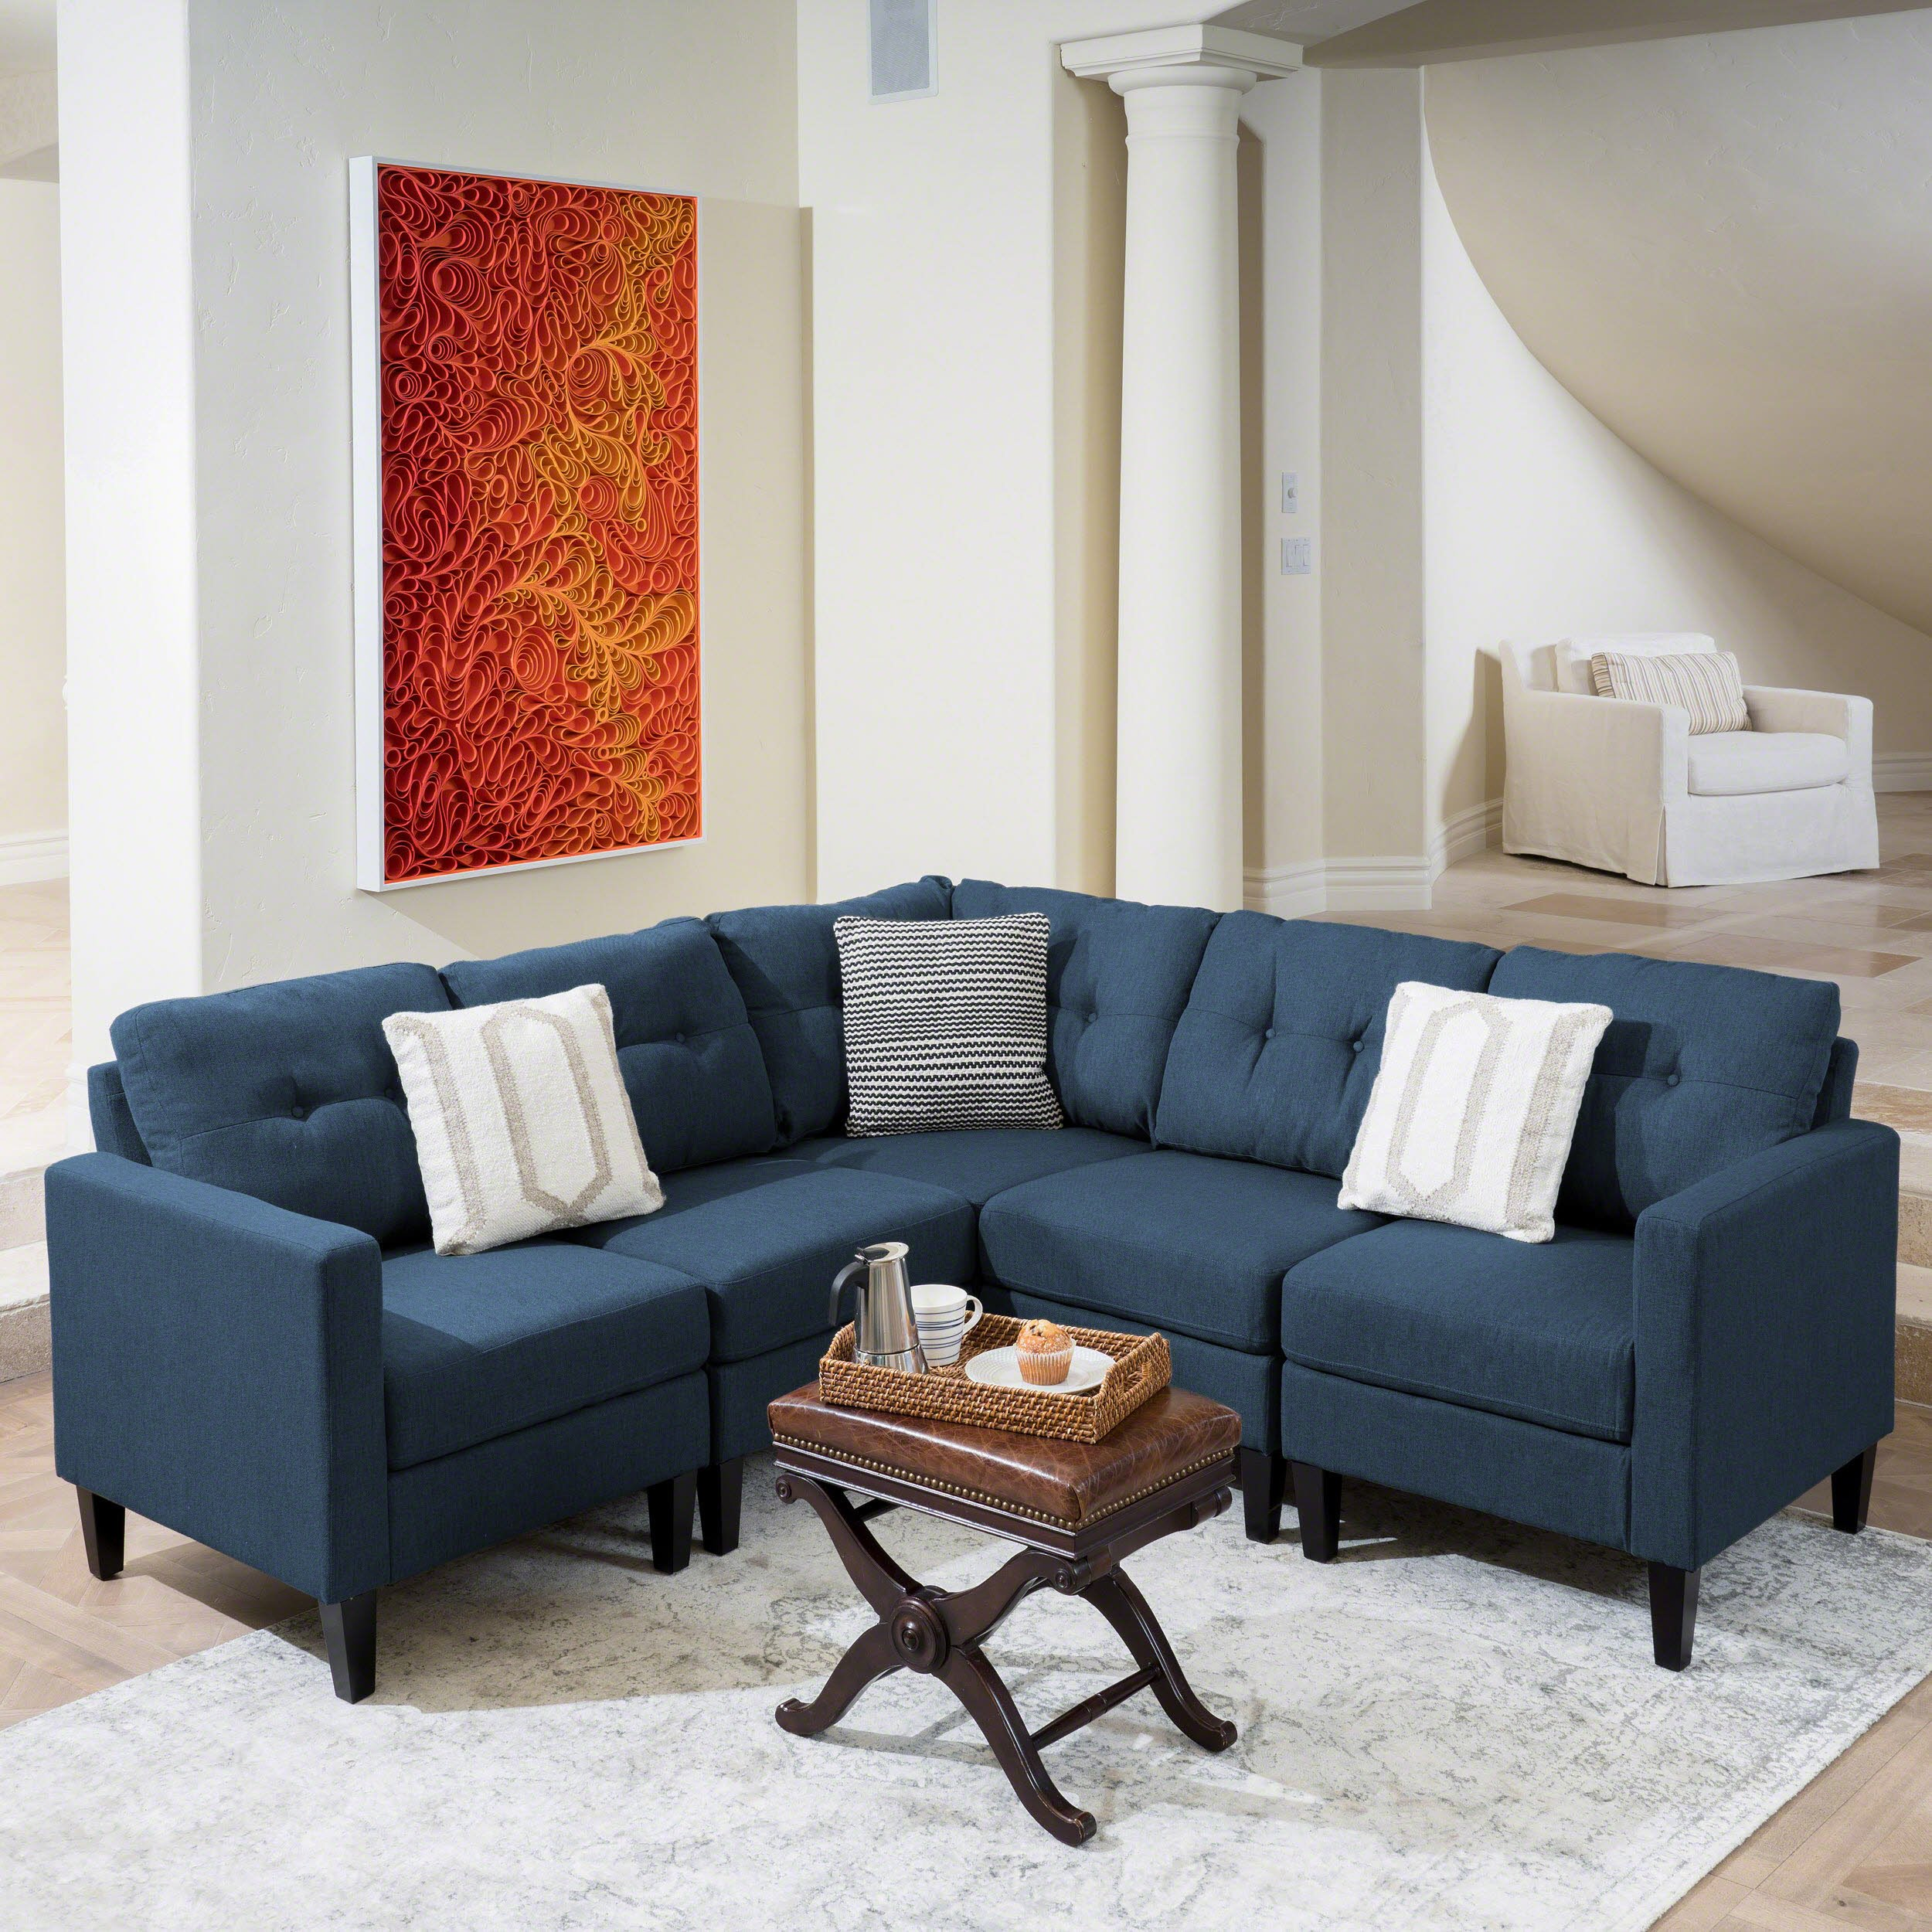 Emma Mid Century Modern 5 Piece Navy Blue Fabric Sectional Sofa by Christopher Knight Home